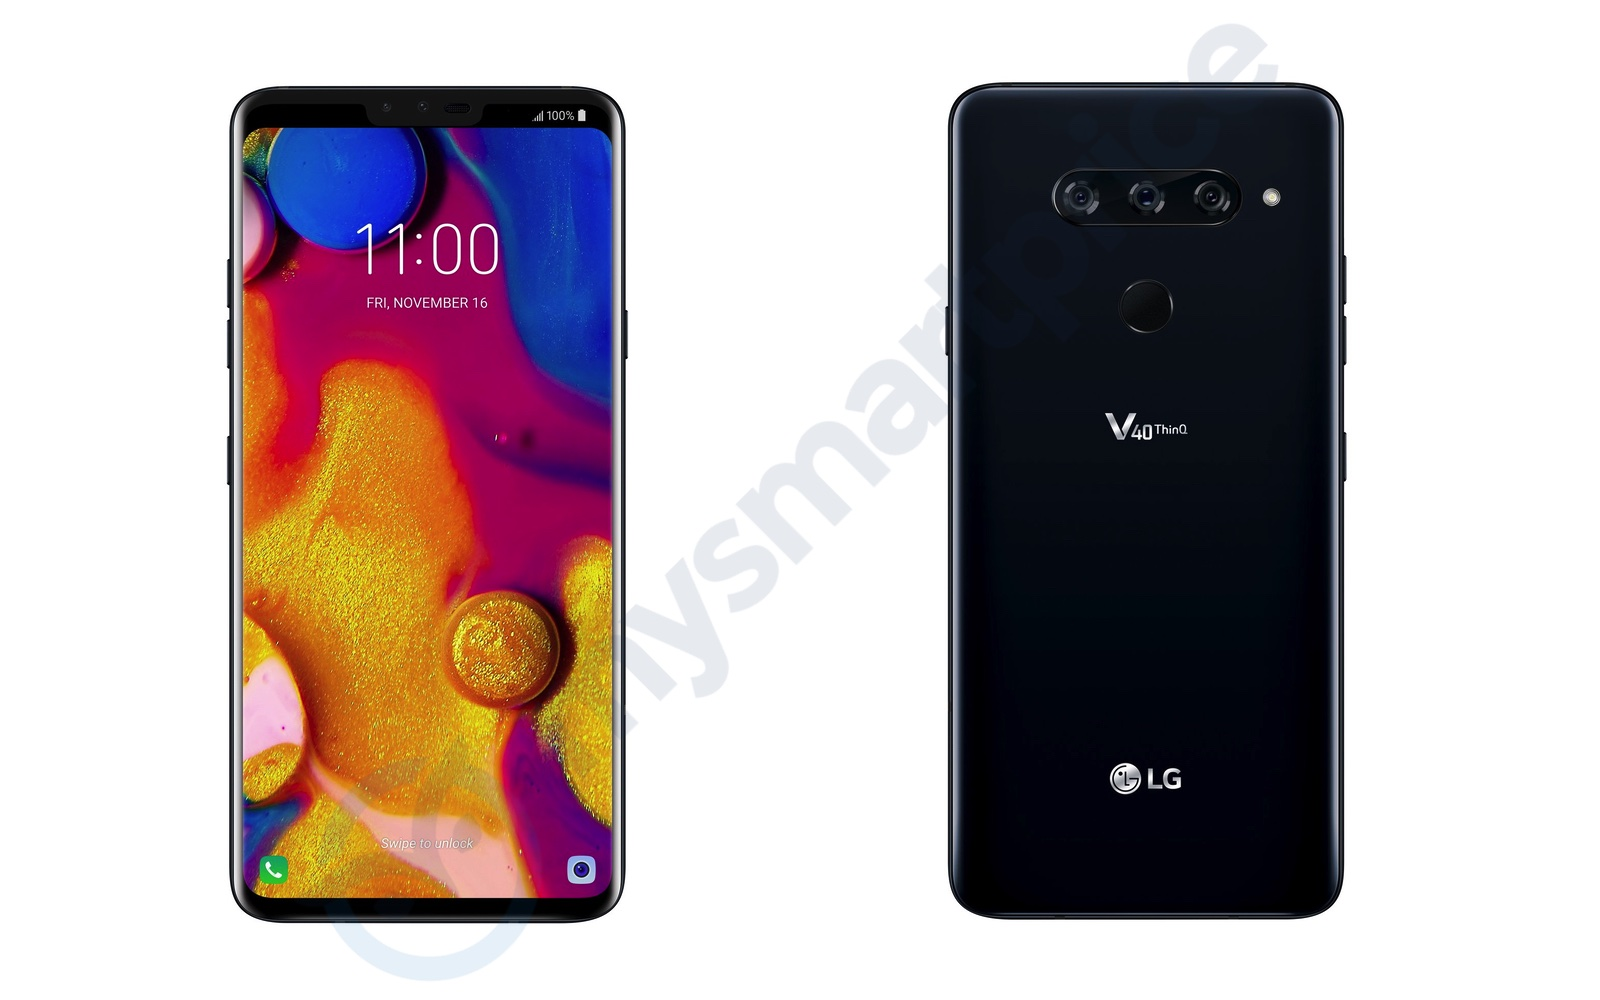 LG V40 ThinQ press render shows phone ahead of next week's launch